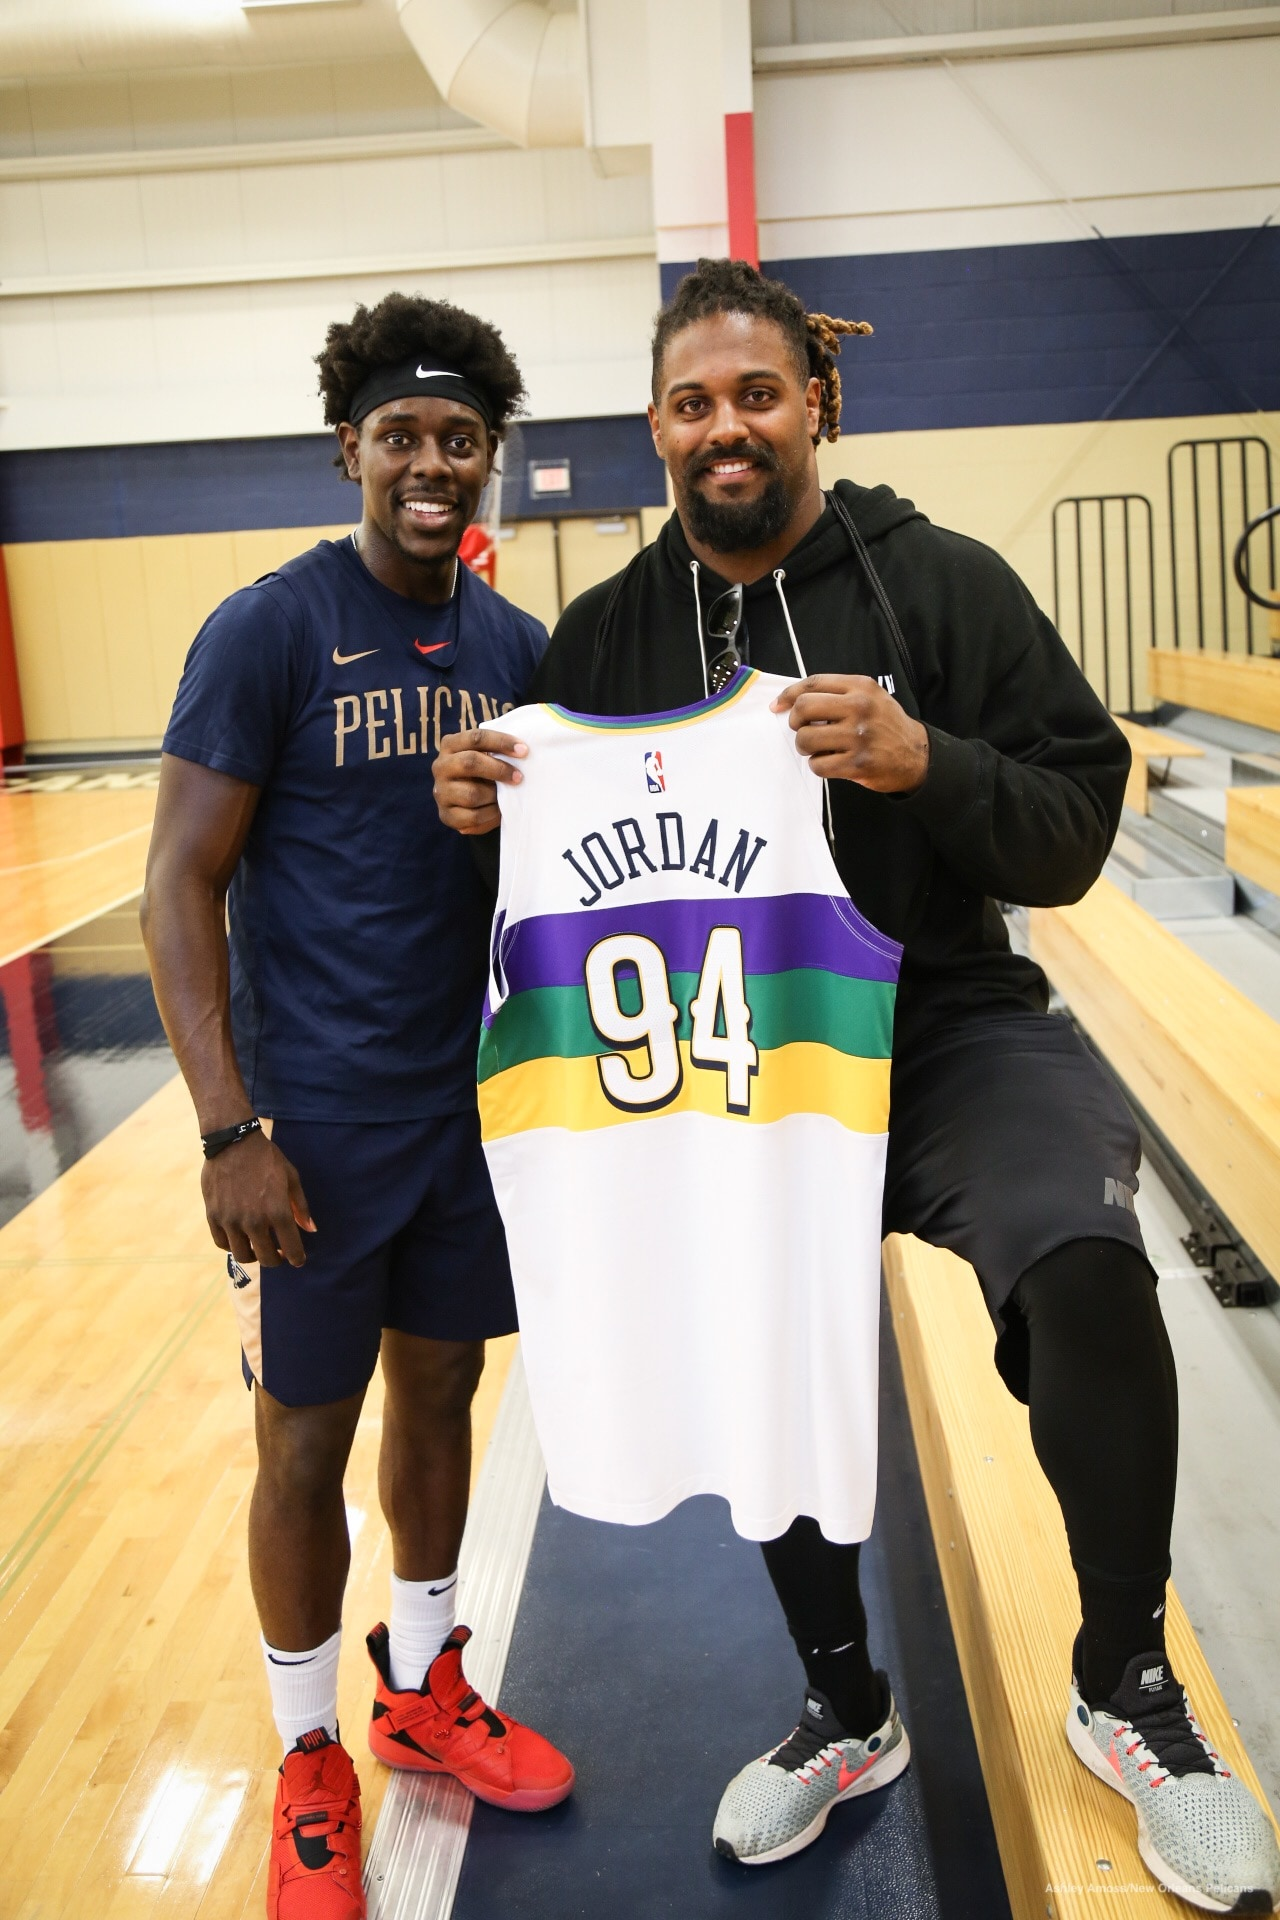 on sale fa24d bb724 Cam Jordan Receives Custom Pelicans Jersey from Jrue Holiday ...